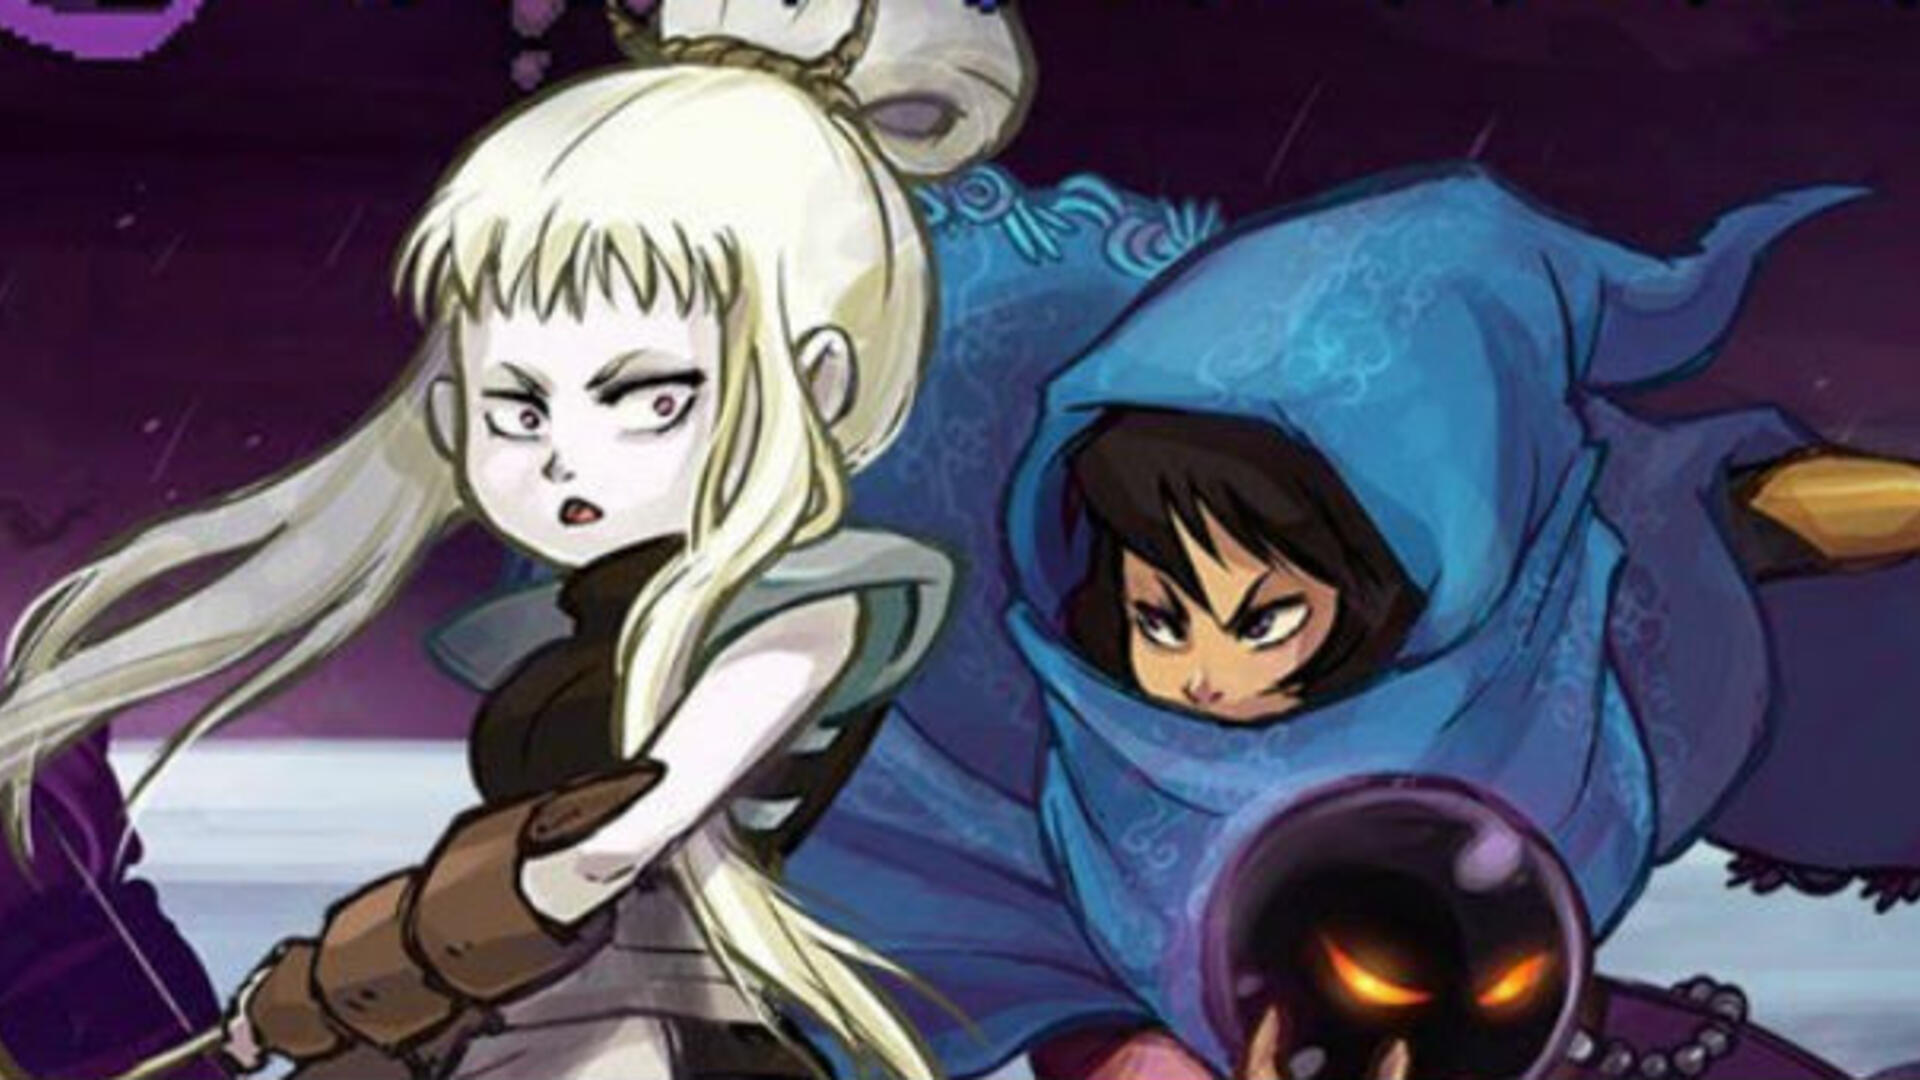 All the New Announcements at Today's Nindie Showcase: Towerfall, Samurai Gunn 2, and More